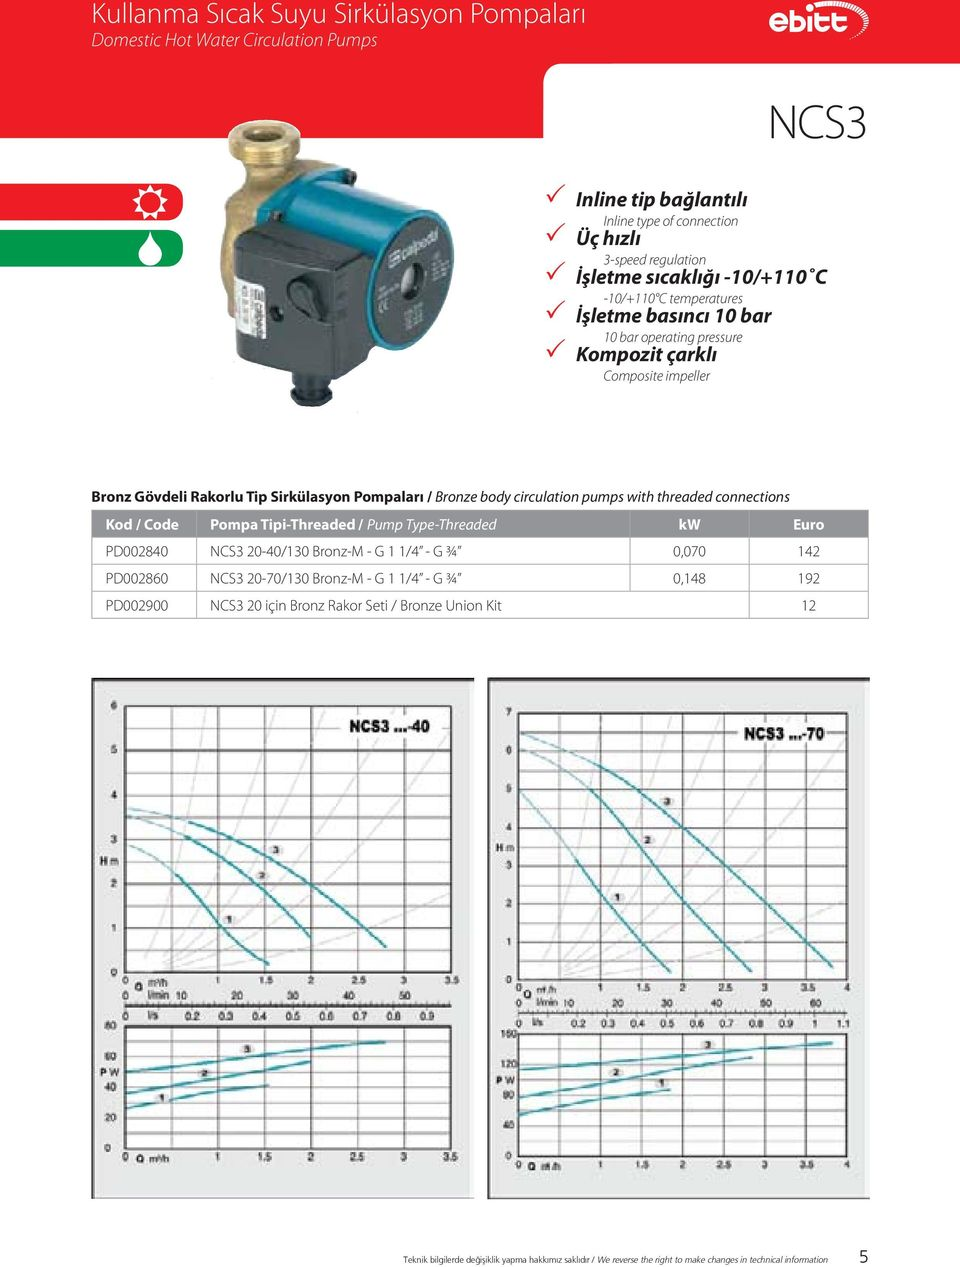 circulation pumps with threaded connections Kod / Code Pompa Tipi-Threaded / Pump Type-Threaded kw Euro PD002840 NCS3 20-40/130 Bronz-M - G 1 1/4 - G ¾ 0,070 142 PD002860 NCS3 20-70/130